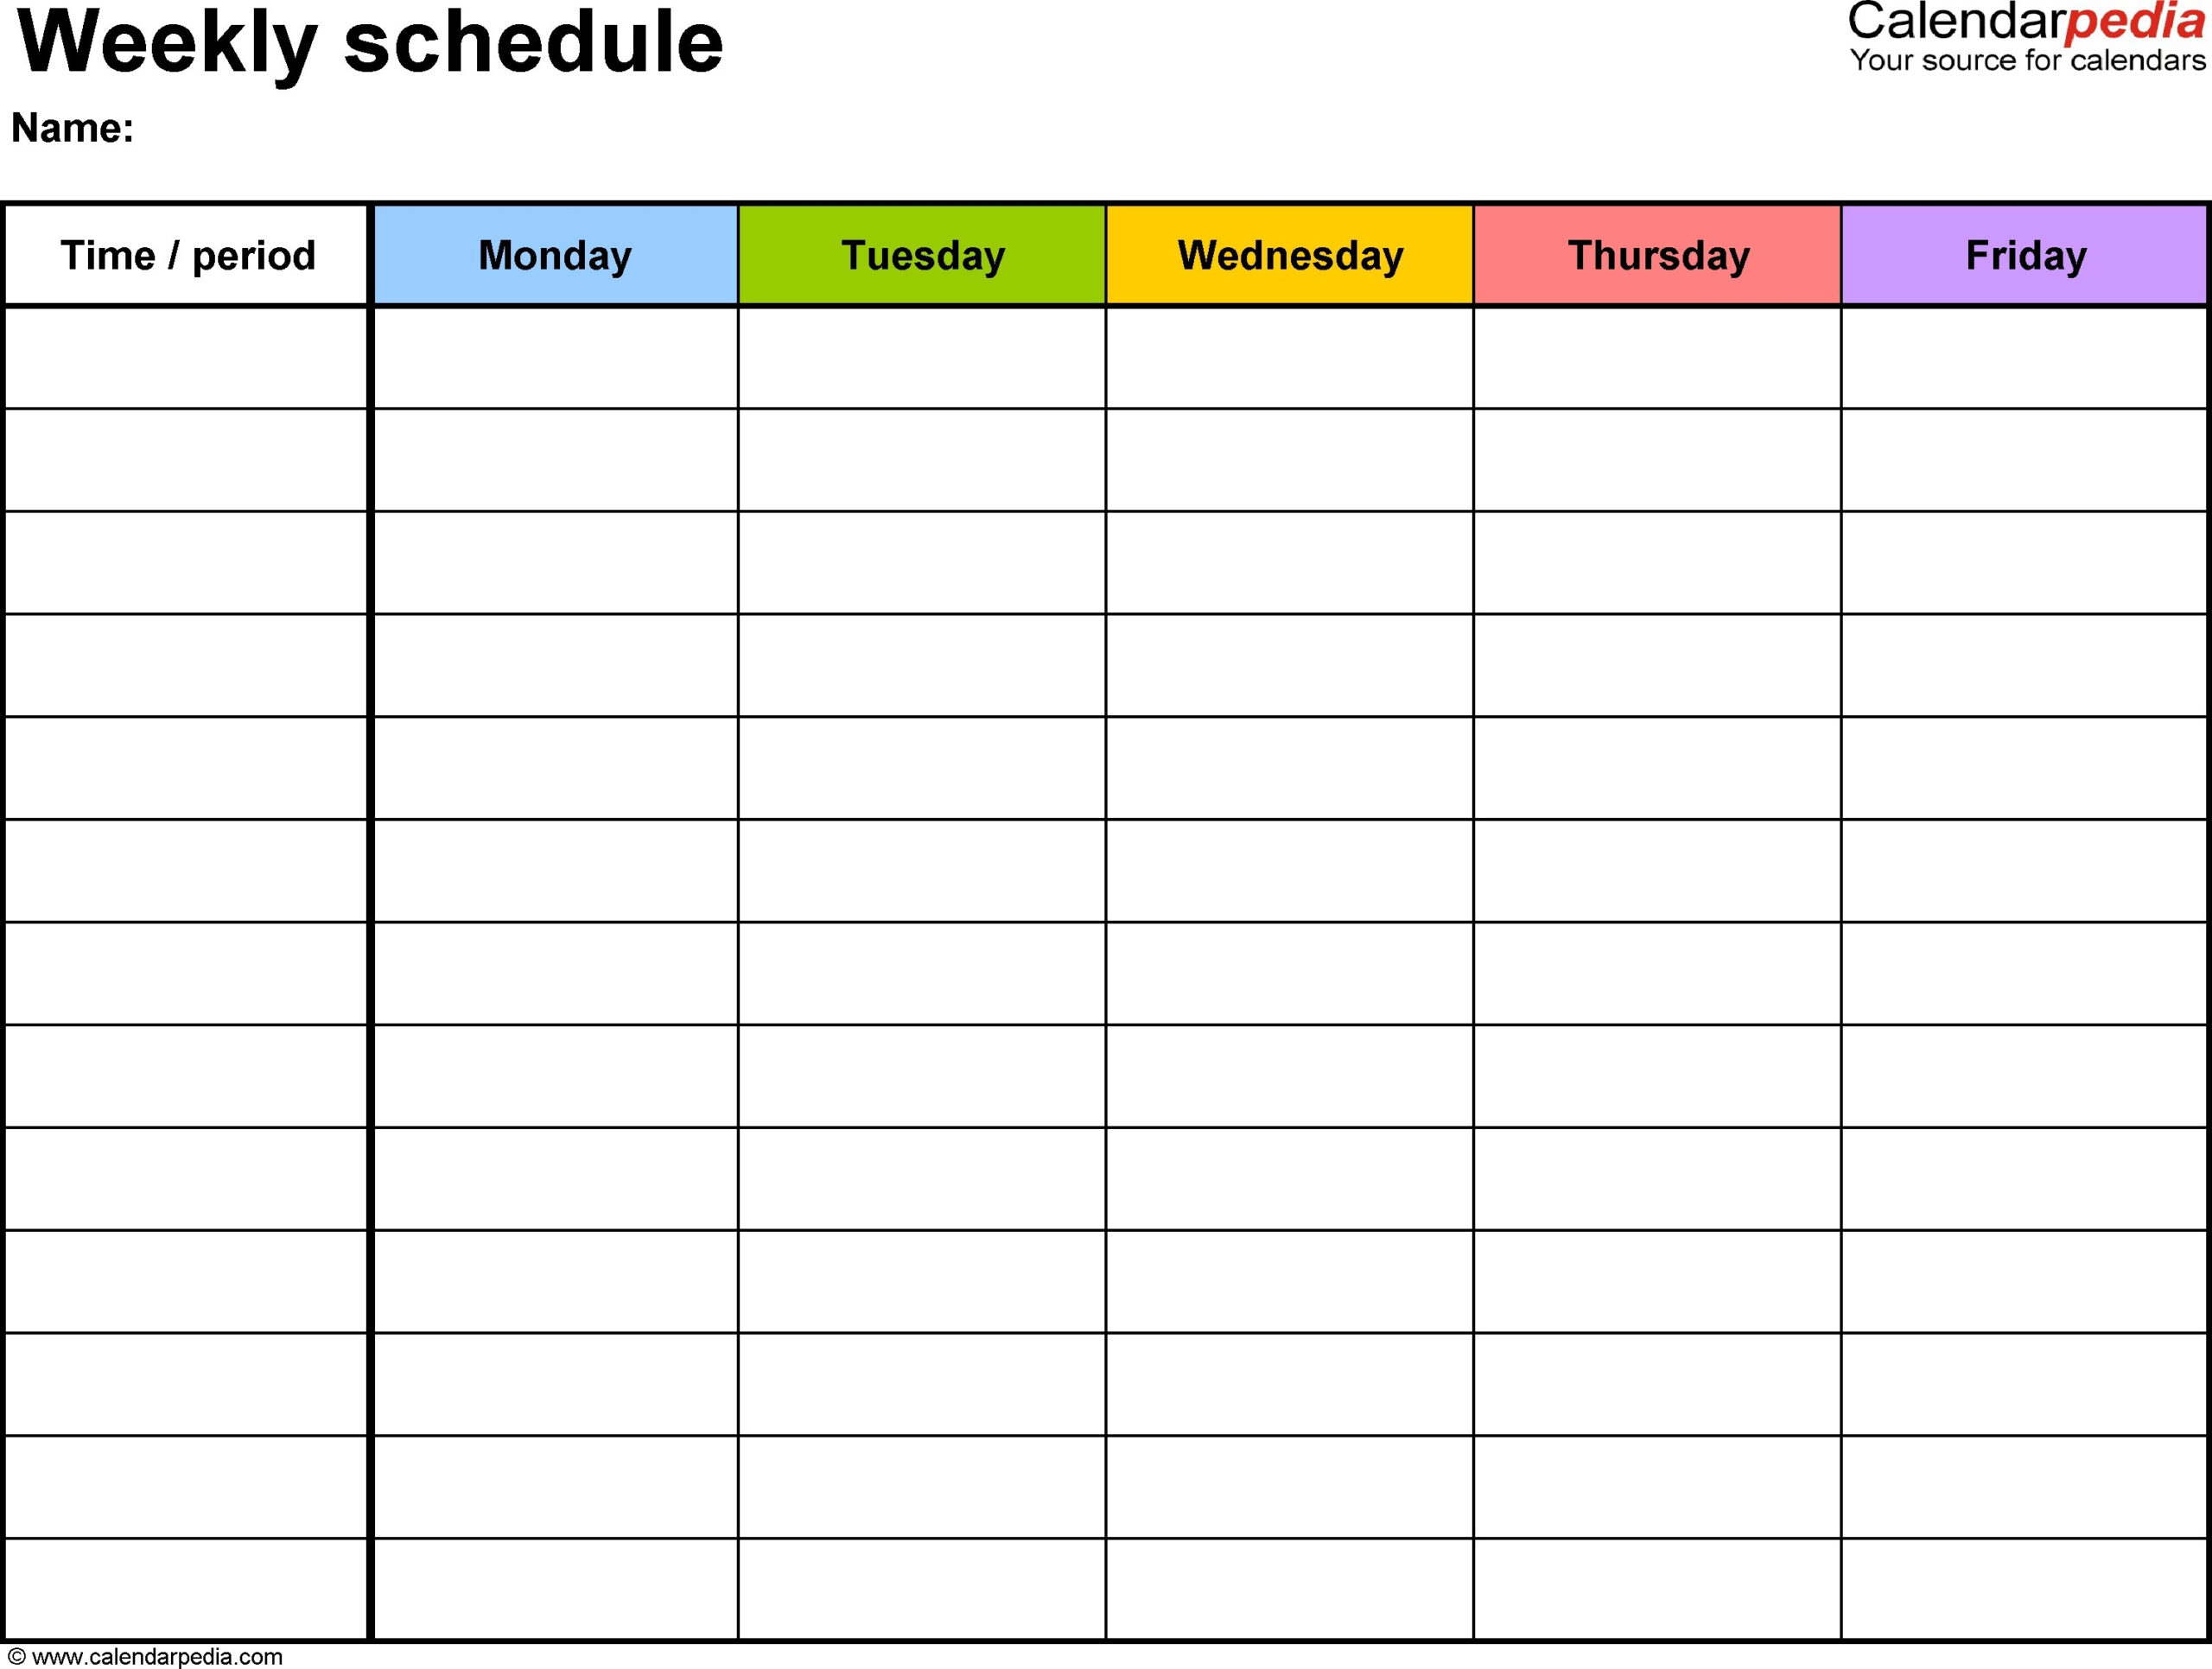 Blank Calendar With Time Slots | Example Calendar Printable with Calendar Template With Time Slots